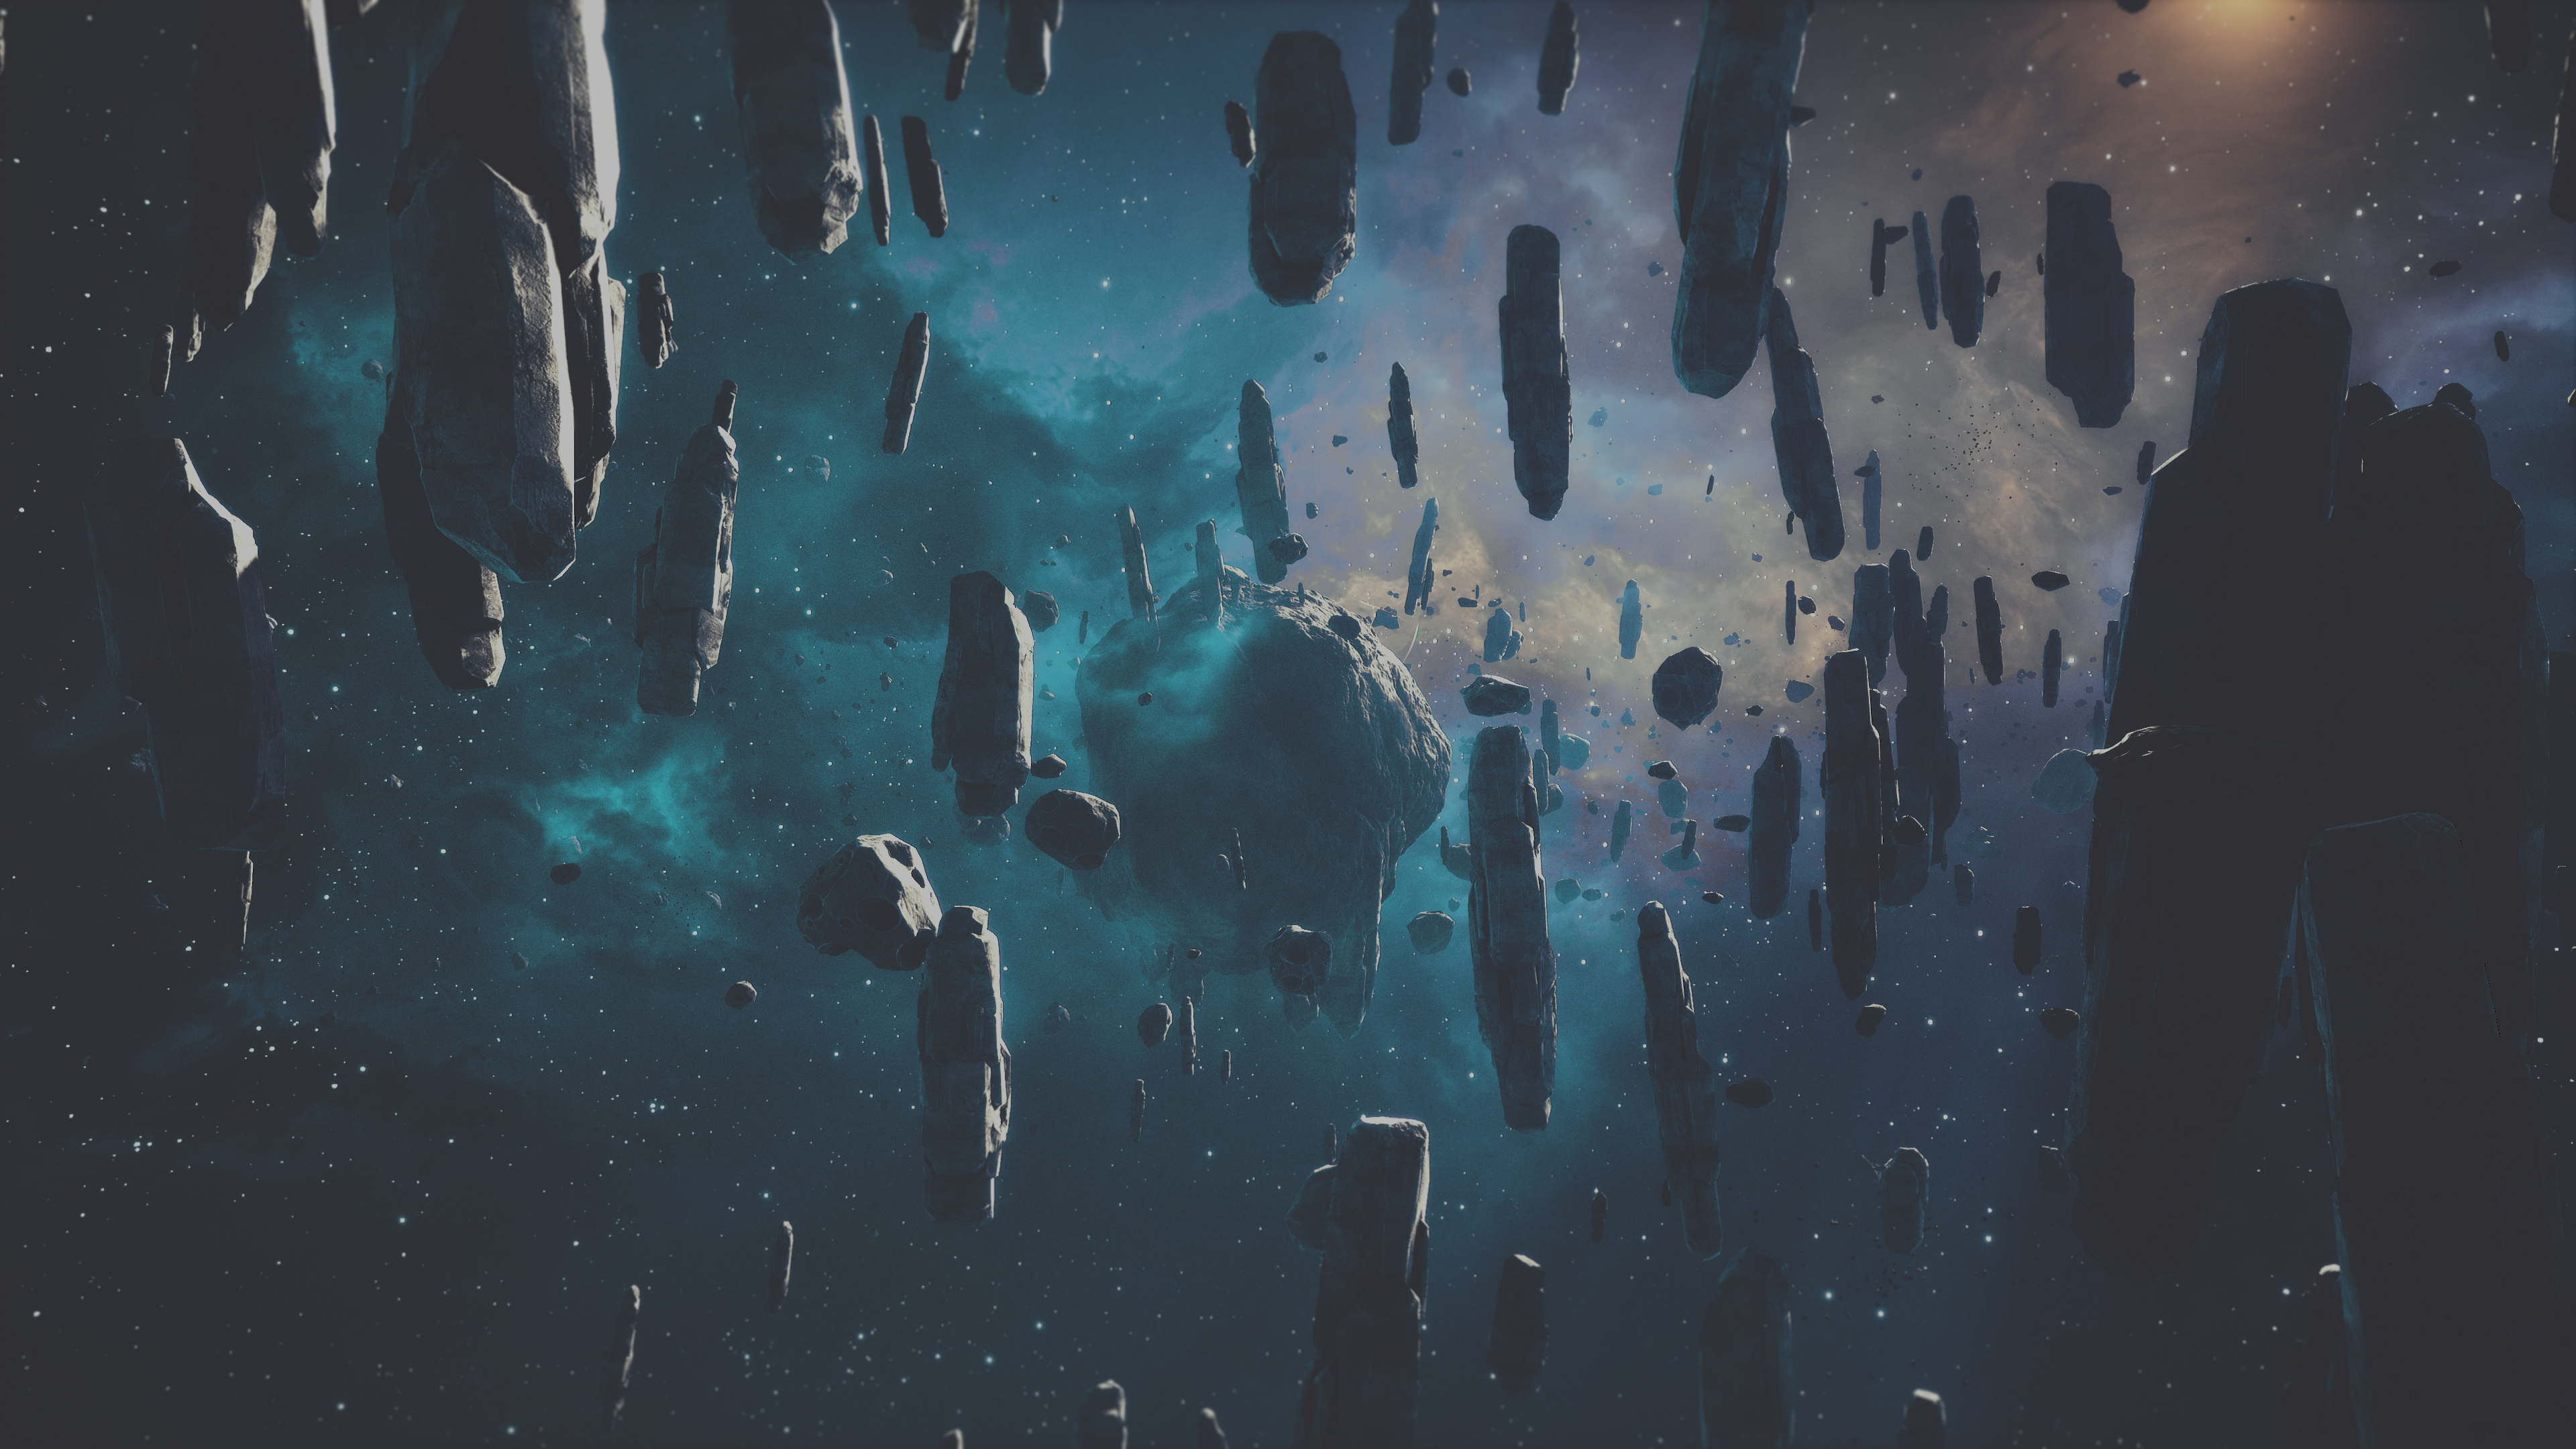 3840x2160 - Asteroid Wallpapers 20